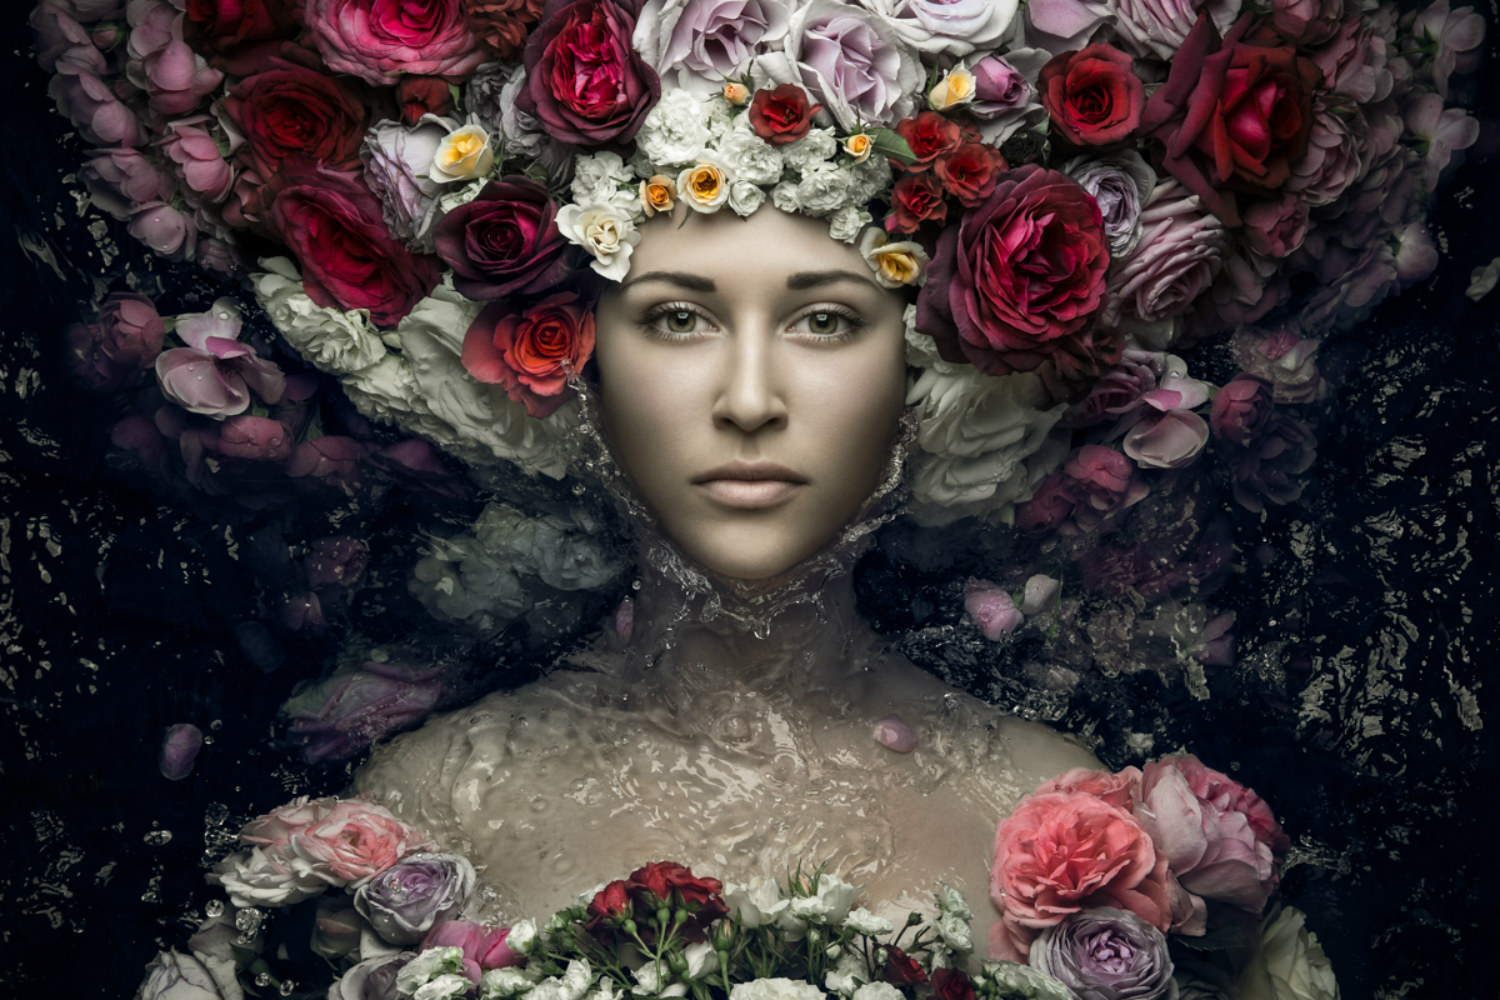 evgeni kolesnik photography surreal portraits ukraine flowers roses